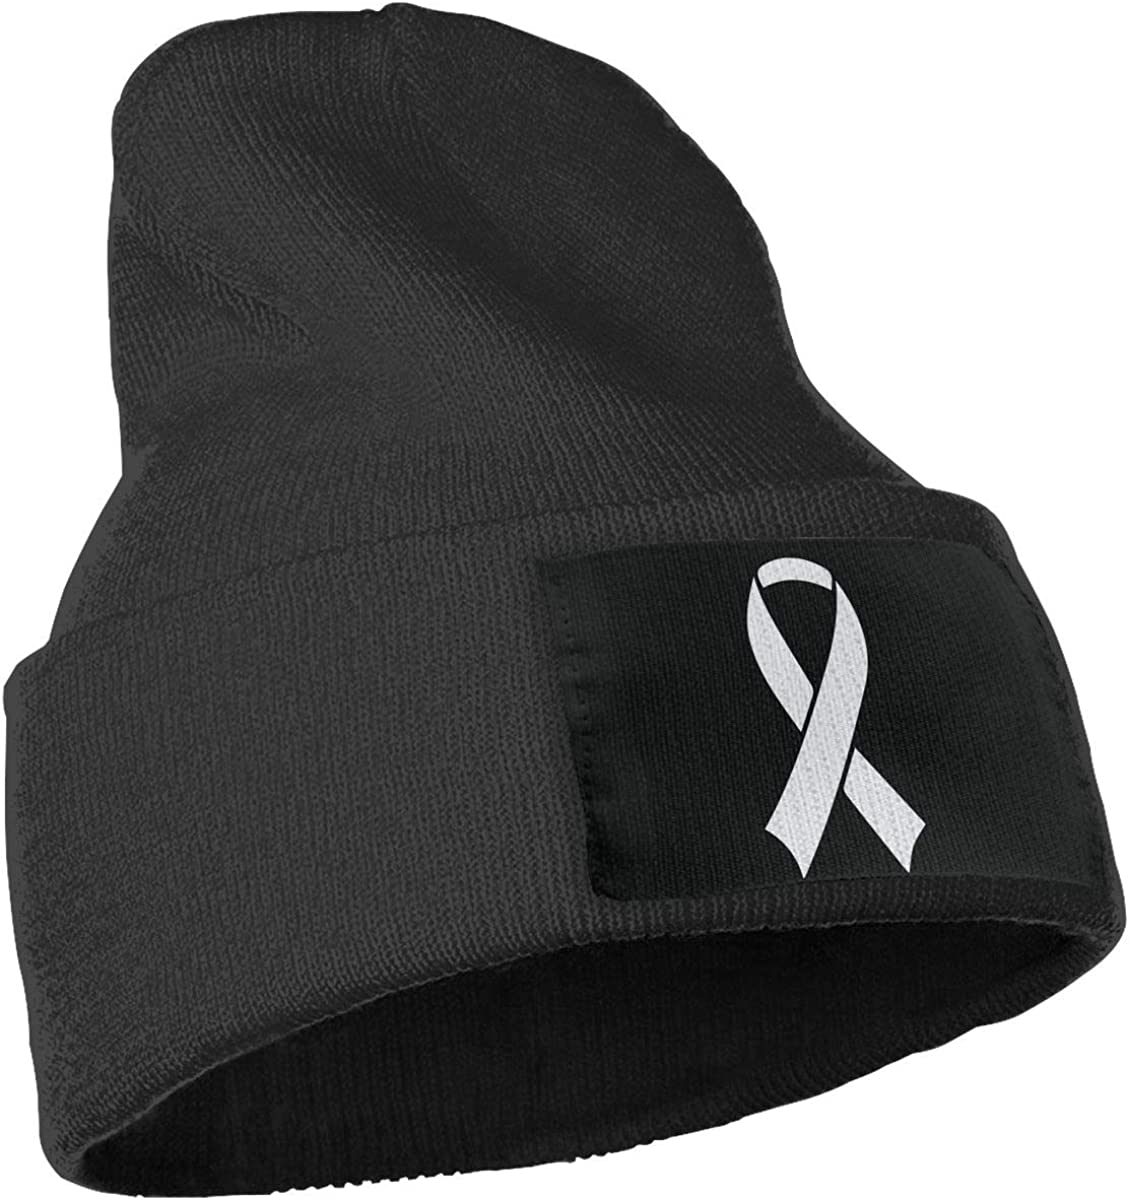 Stretchy /& Soft Winter Cap Brain Cance Awareness American Flag Men /& Women Solid Color Beanie Hat Thin